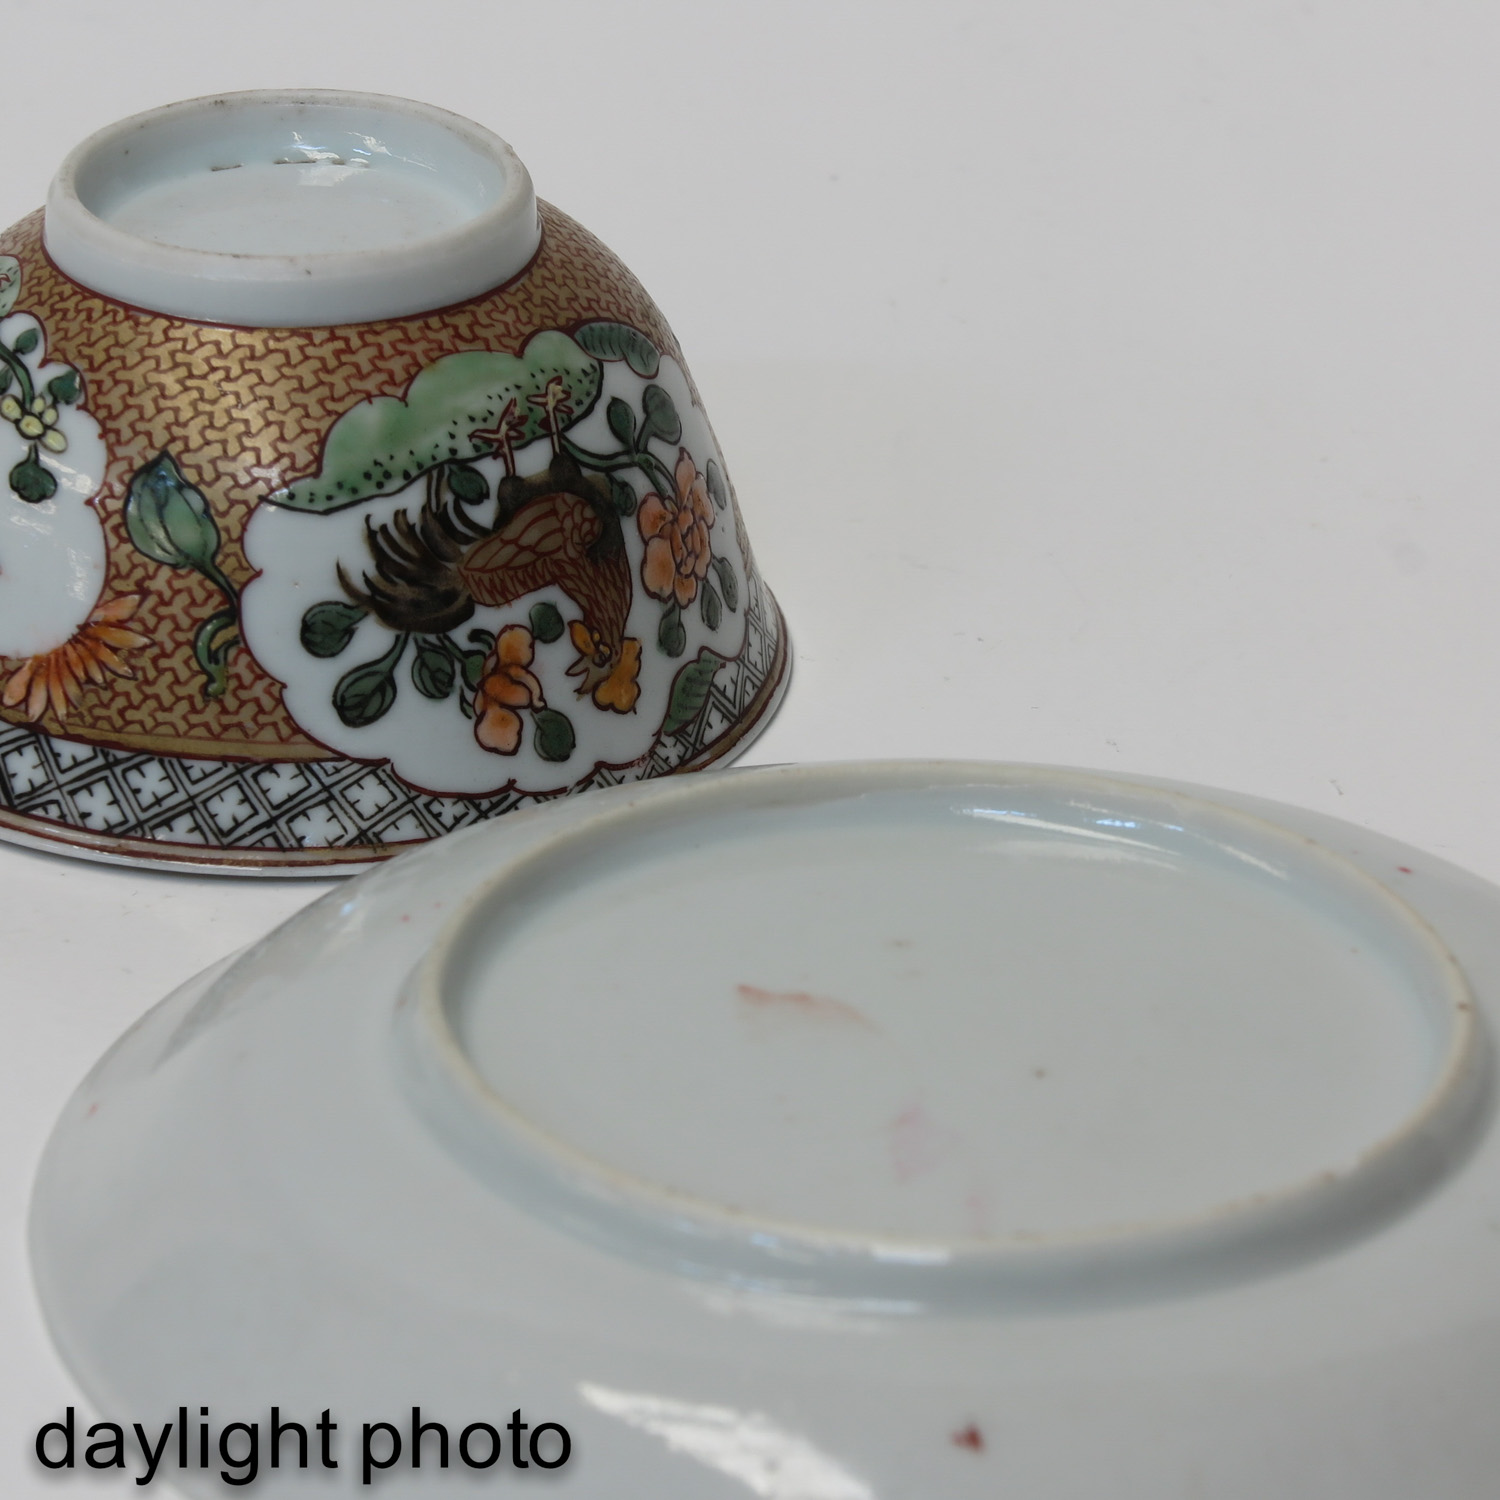 A Rooster Decor Cup and Saucer - Image 8 of 10